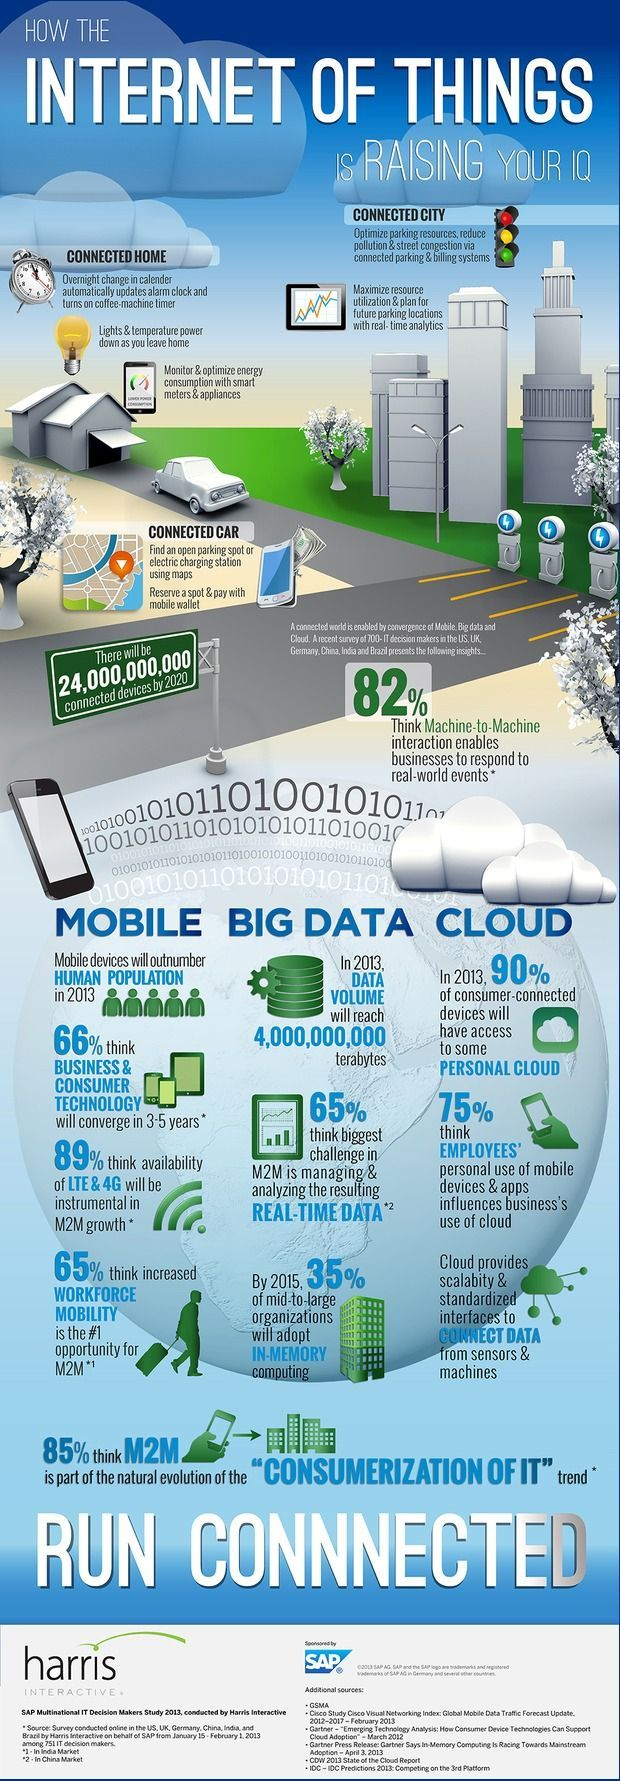 Mobile + Big Data + Cloud = M2M Here's a cool infographic that shows how all the pieces of machine-to-machine technology are coming together.